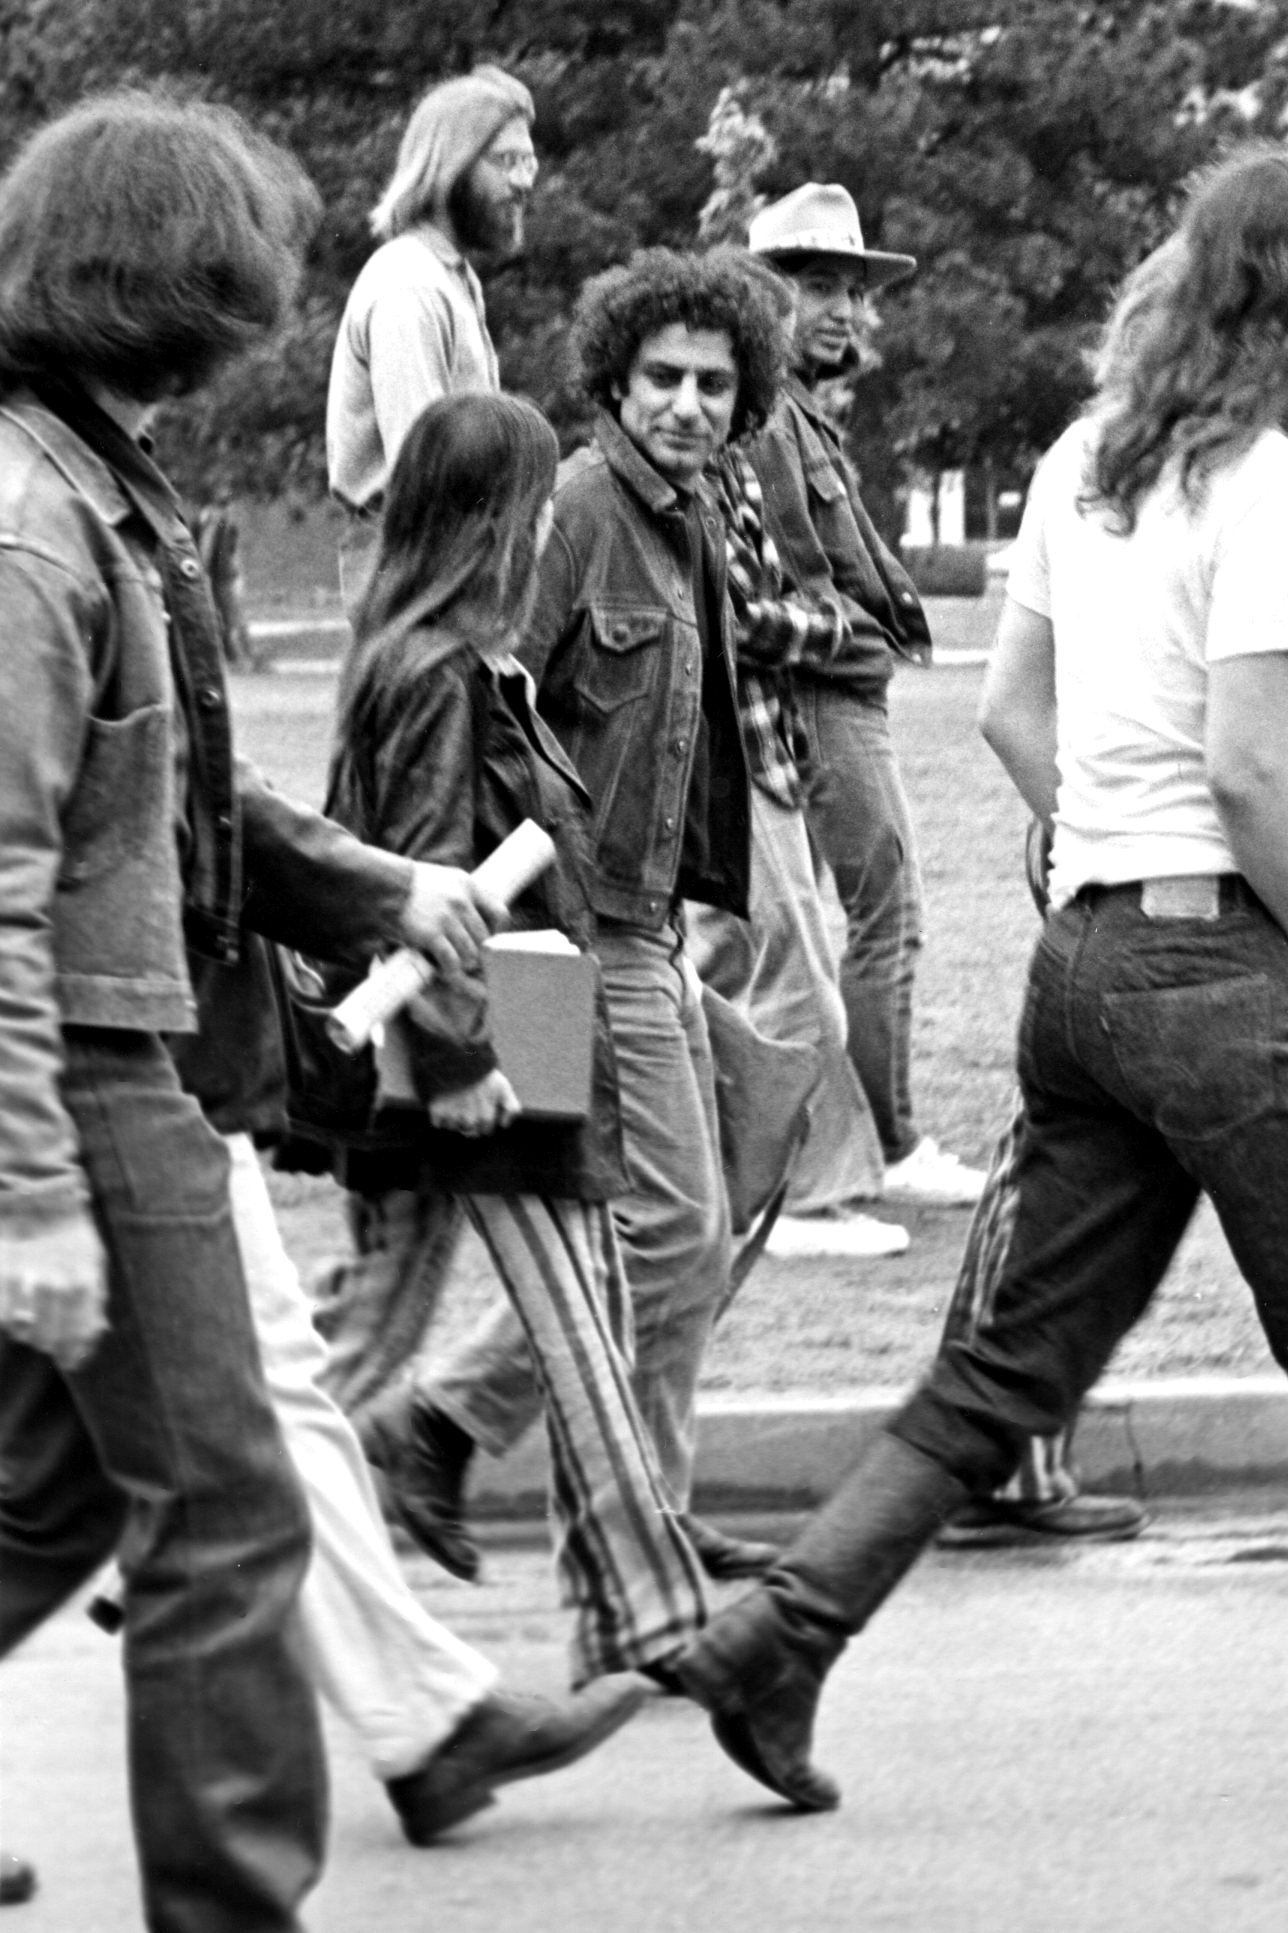 Abbie_Hoffman_visiting_the_University_of_Oklahoma_circa_1969